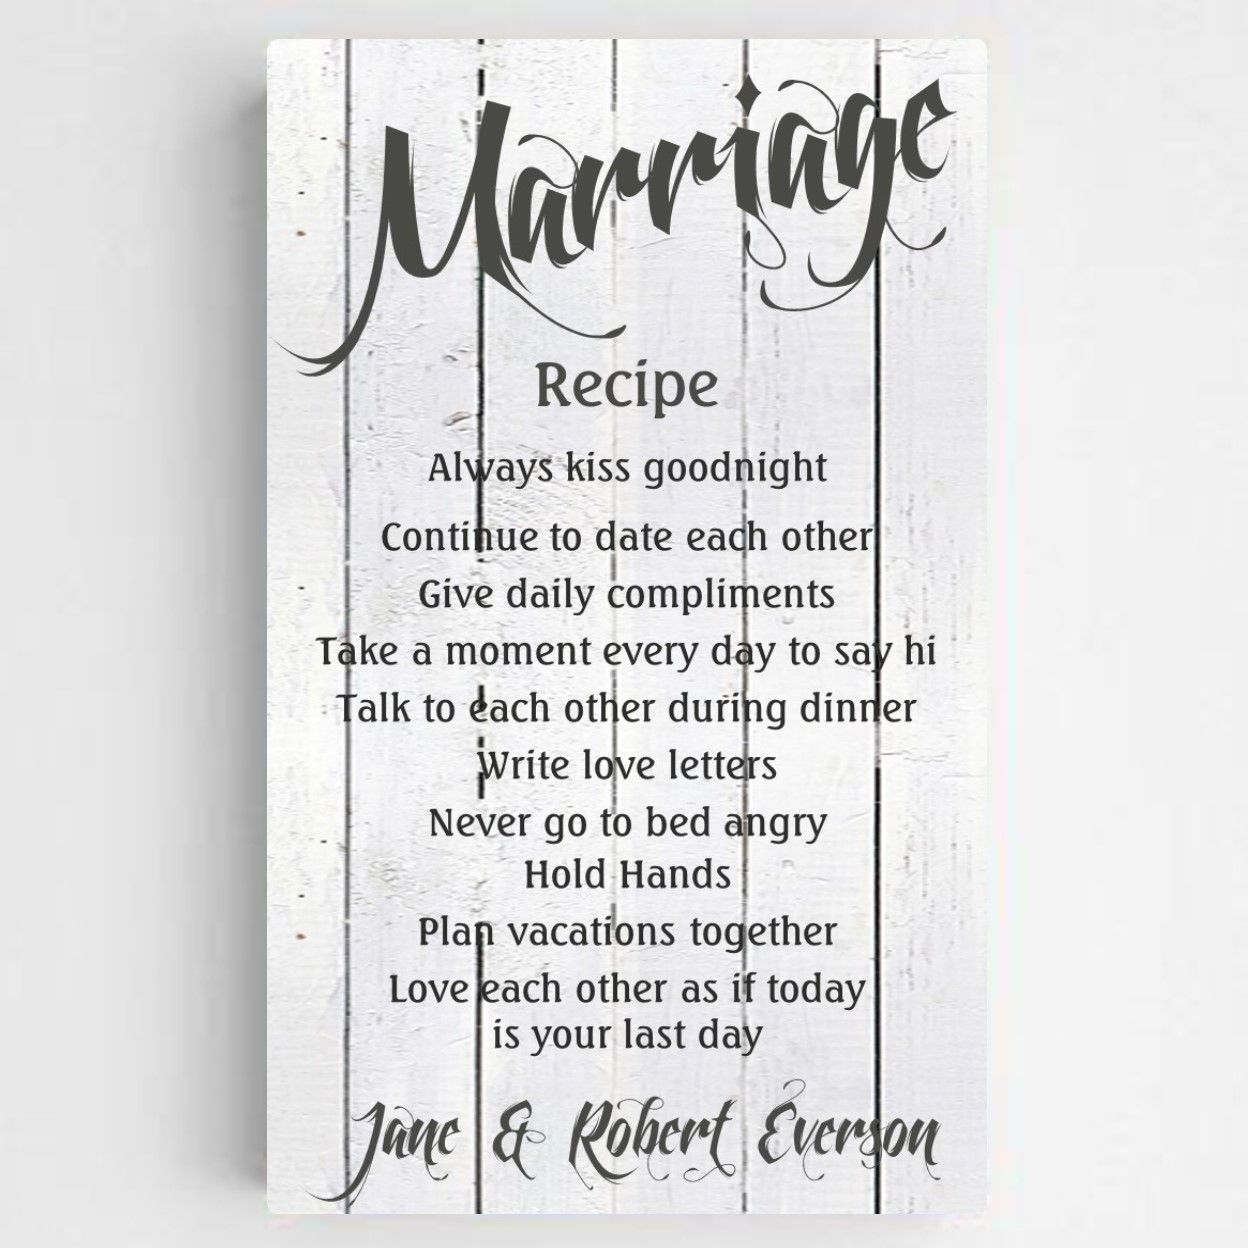 Sale We Have Had So Much Interest In Our Gorgeous Marriage Recipe Sign That We Are Now Offeri Recipe For Marriage Marriage Signs Wedding Anniversary Quotes